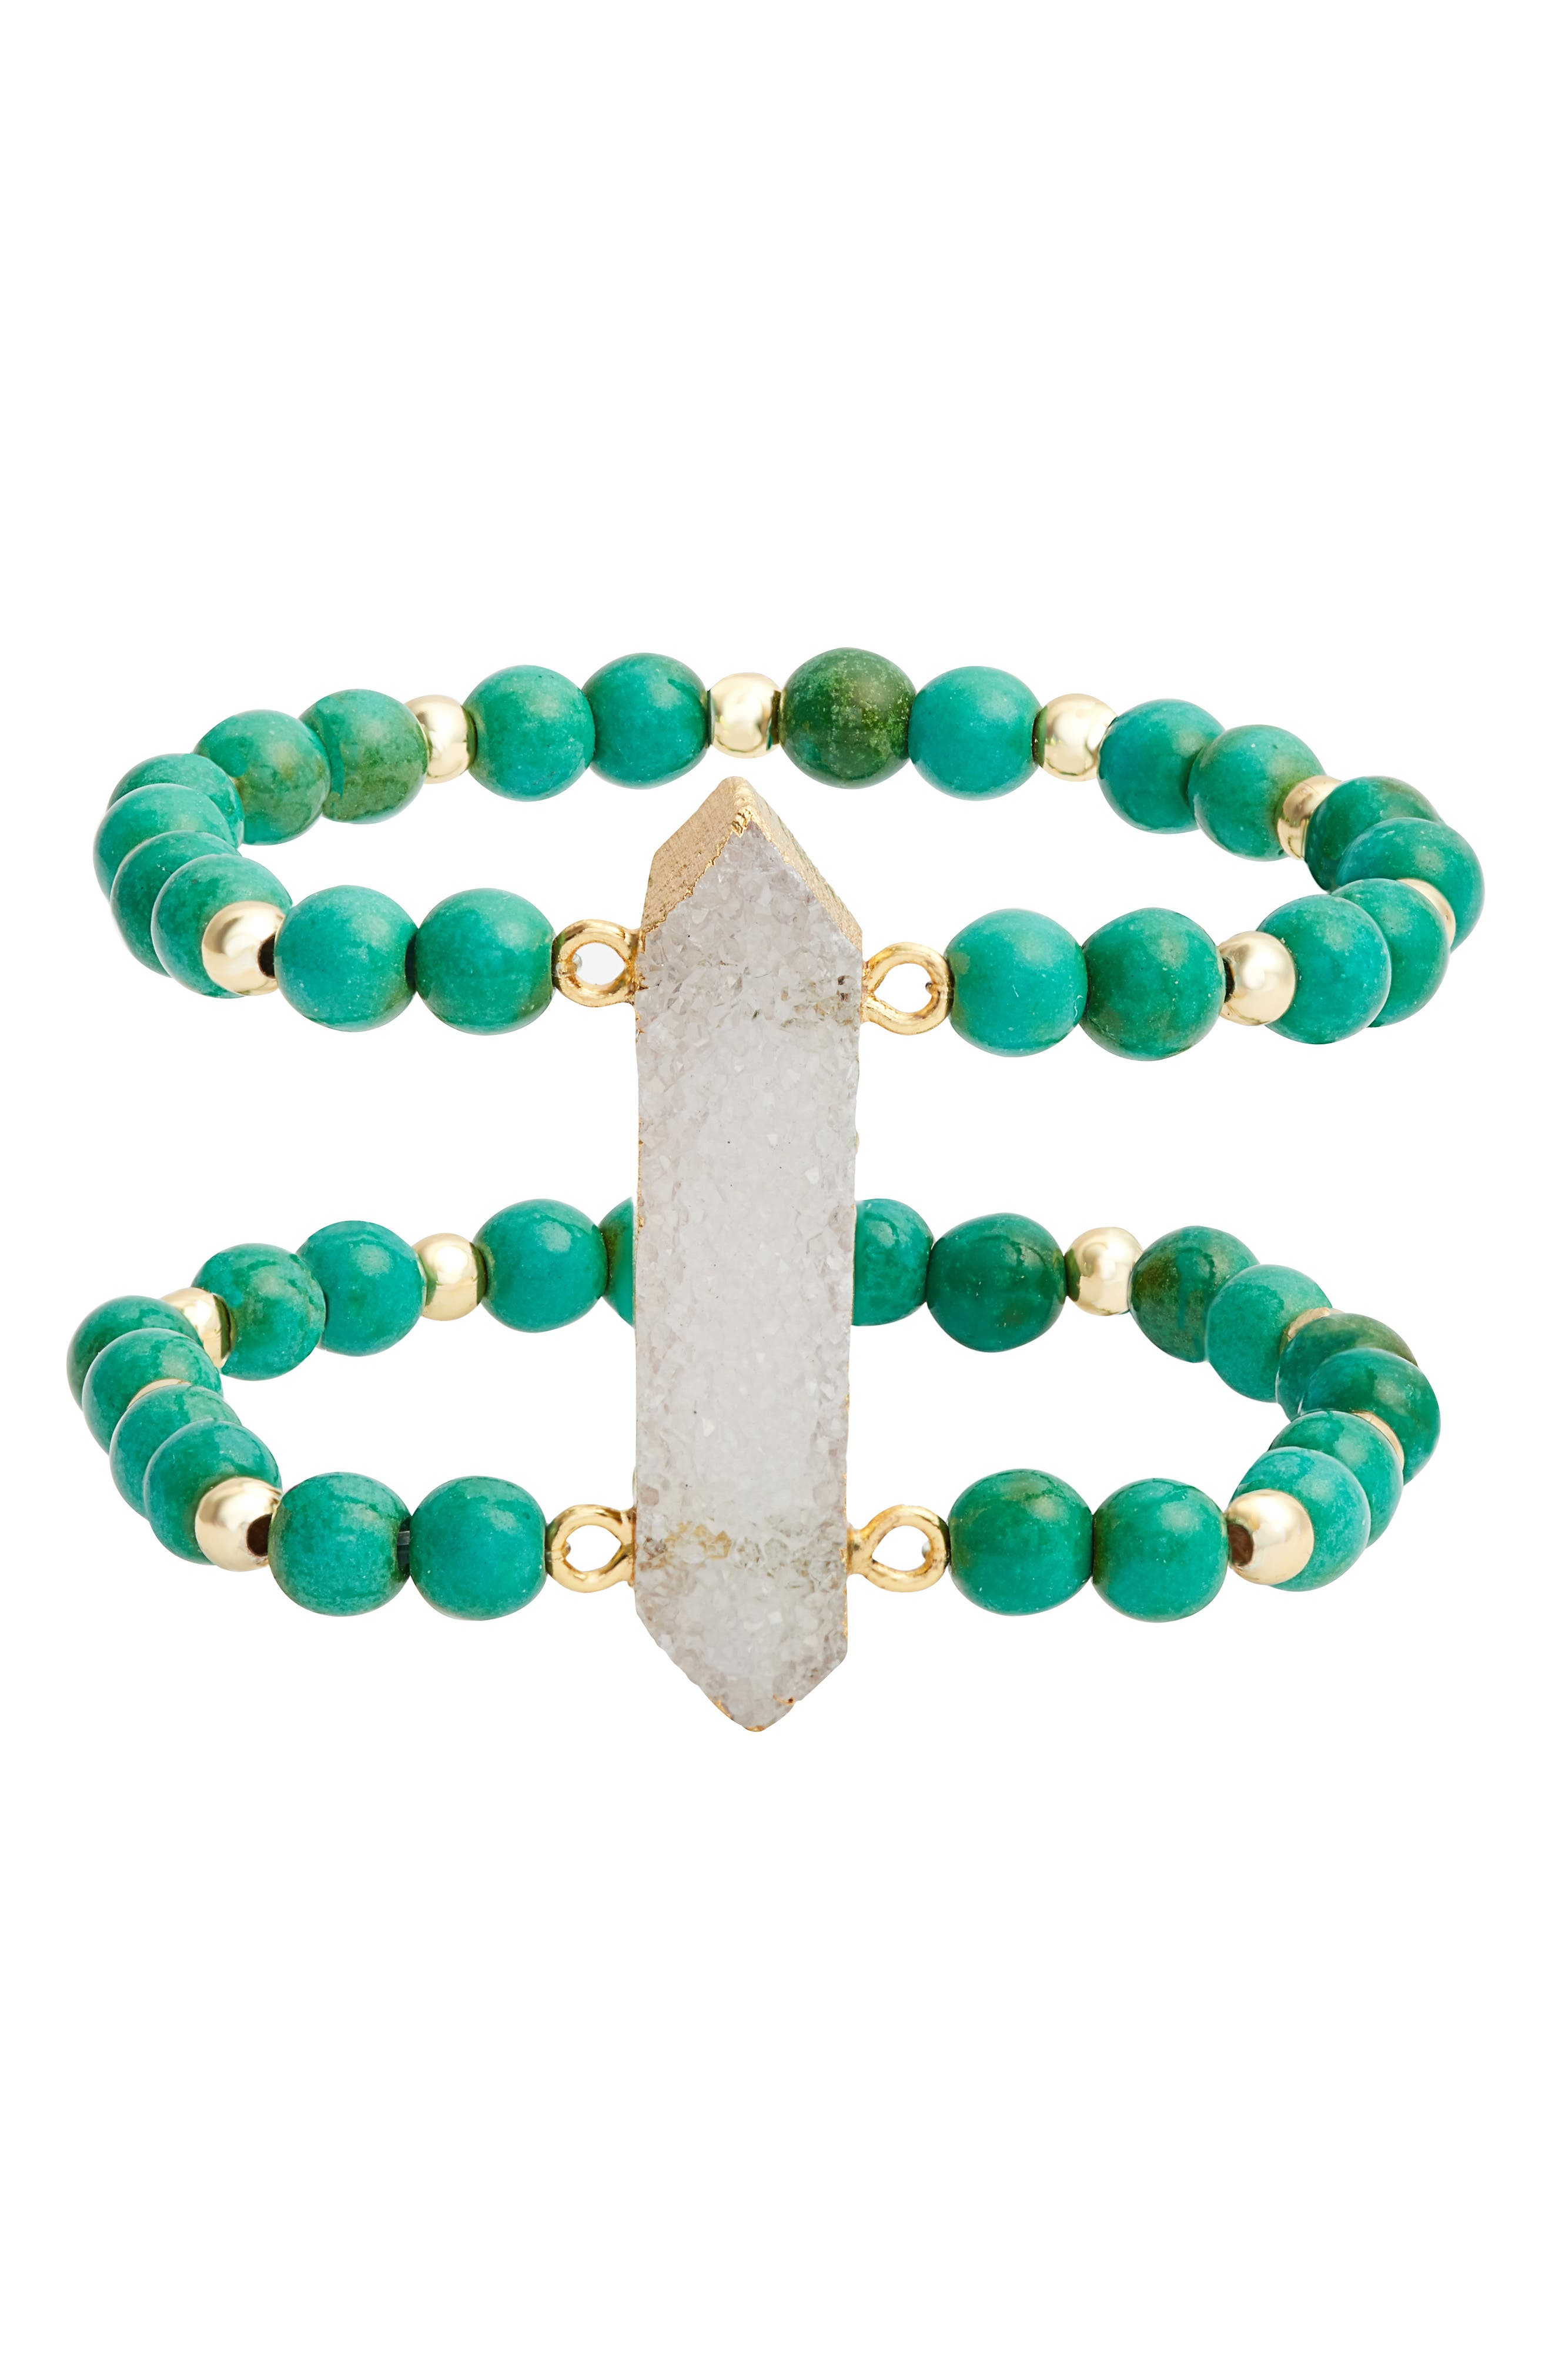 ELISE M. Candice Double Stretch Bracelet in Green/ Turquoise